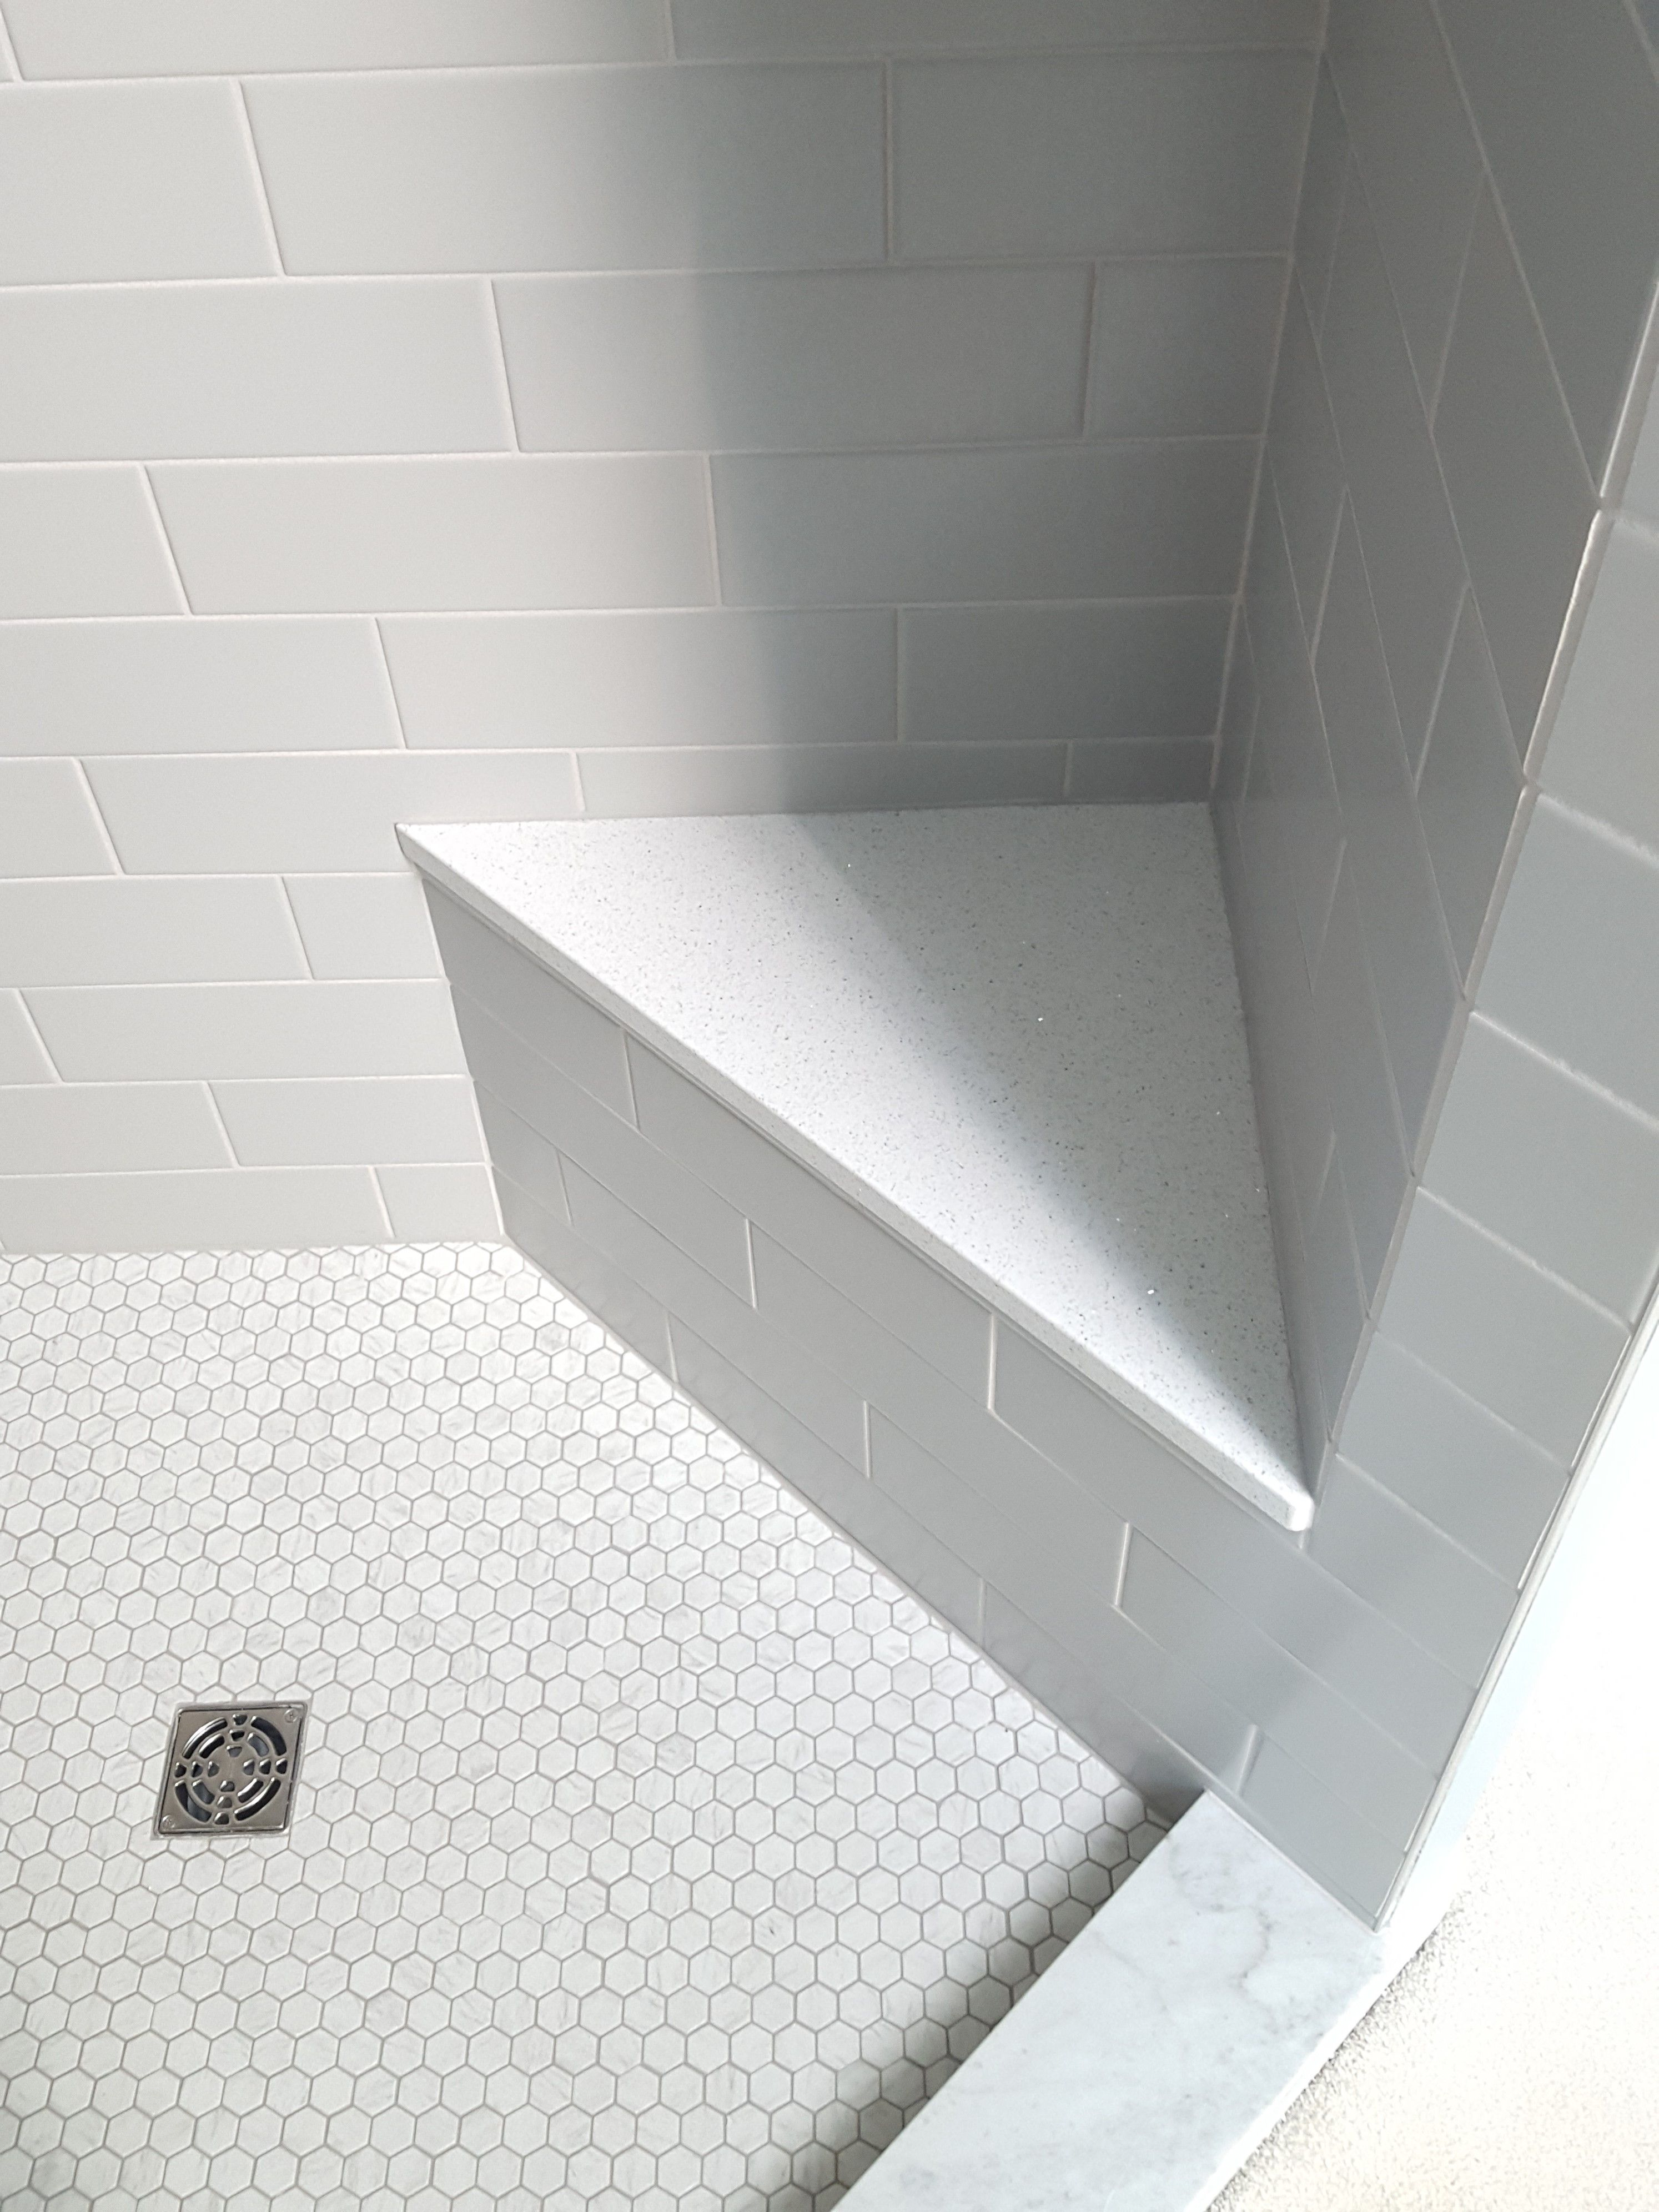 Hanstone Specchio White Quartz Shower Seat Surface Adds A Little Sparkle 4x12 Gray Subway Tiles In Matte Fin Gray Shower Tile Shower Tile White Bathroom Tiles